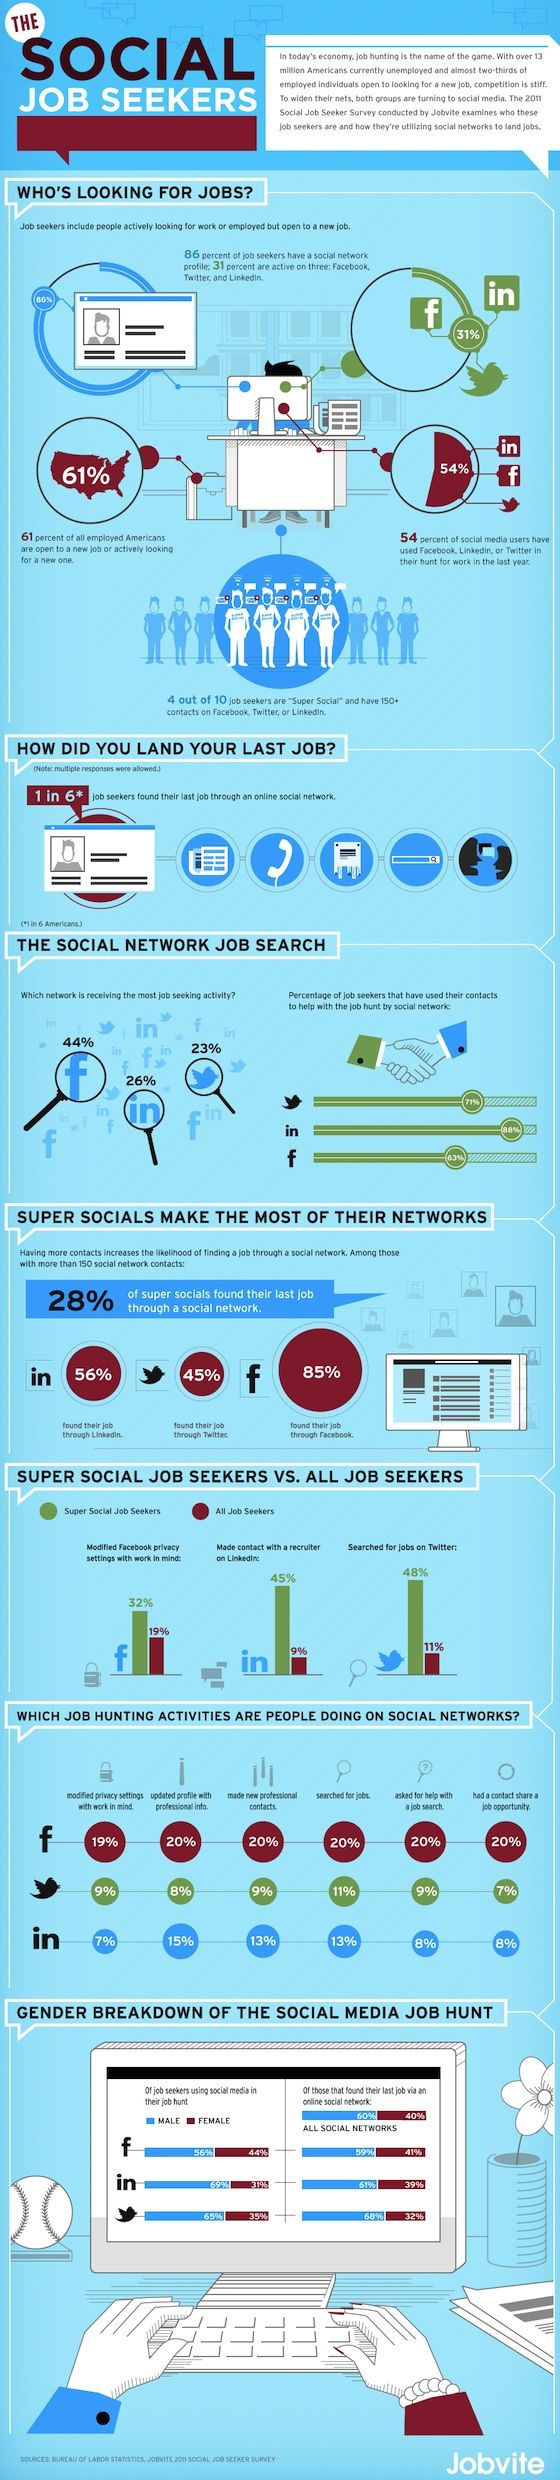 Which Social Network Has the Most Job Search Activity? [INFOGRAPHIC] from http://theundercoverrecruiter.com